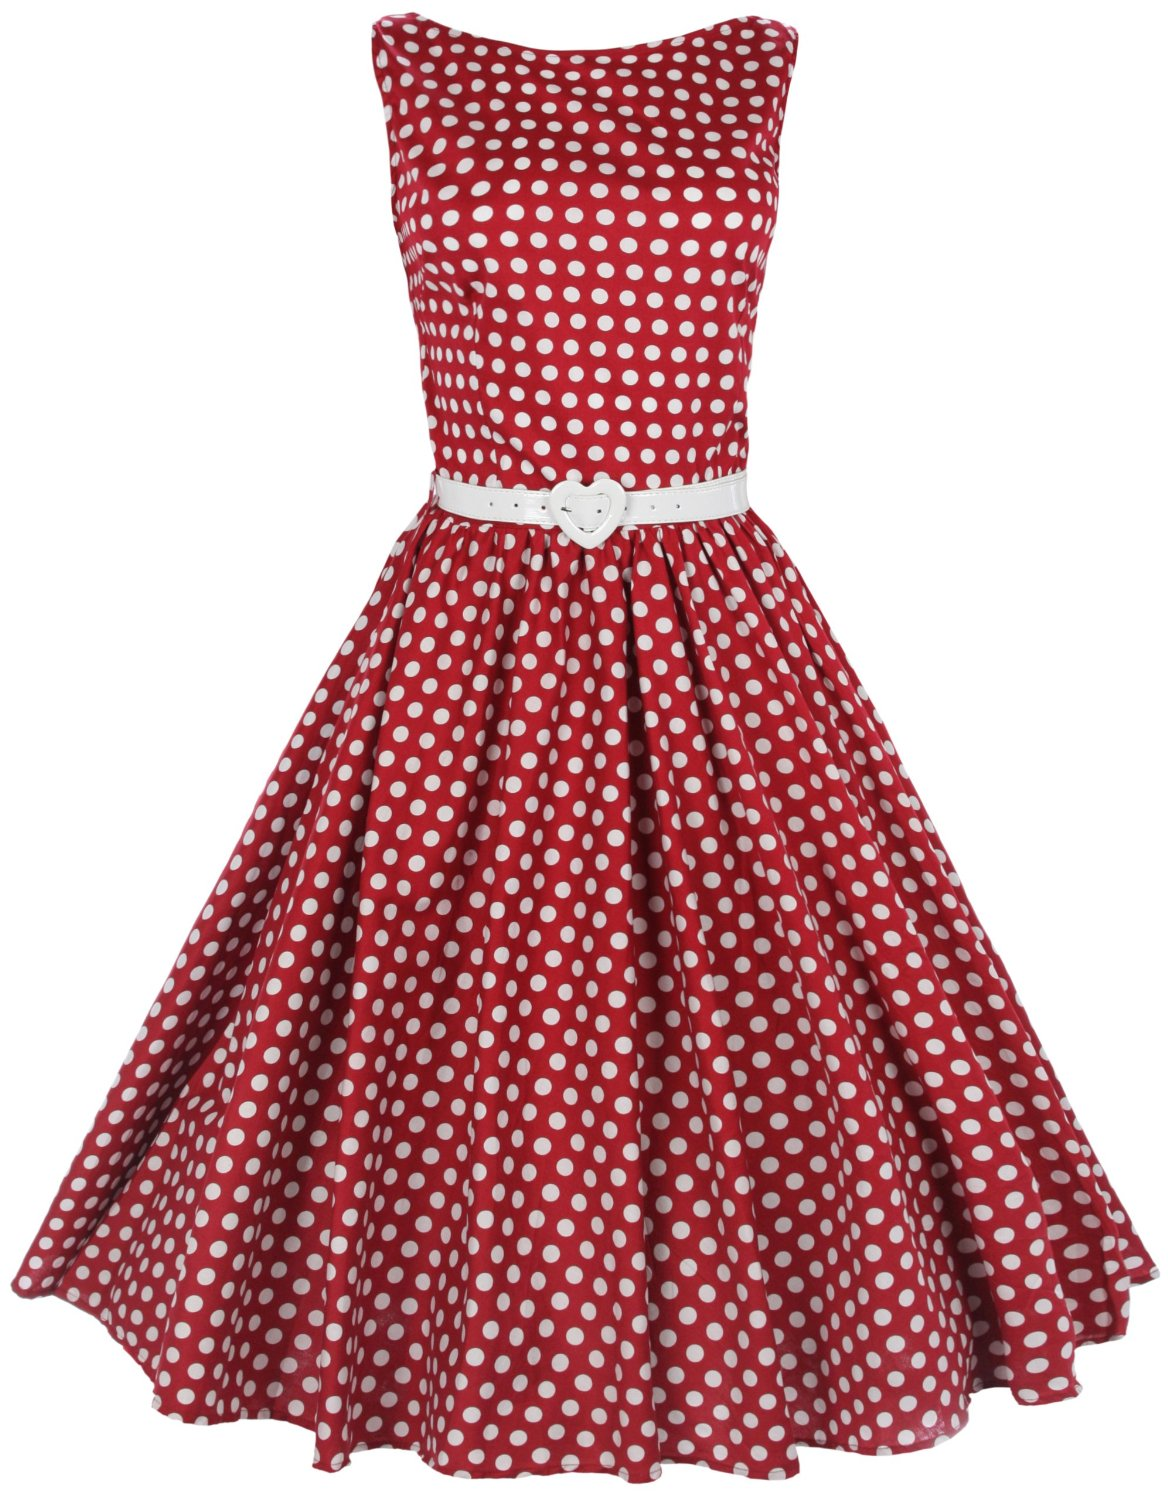 Retro Red Dress with Dots 181.49 Kb